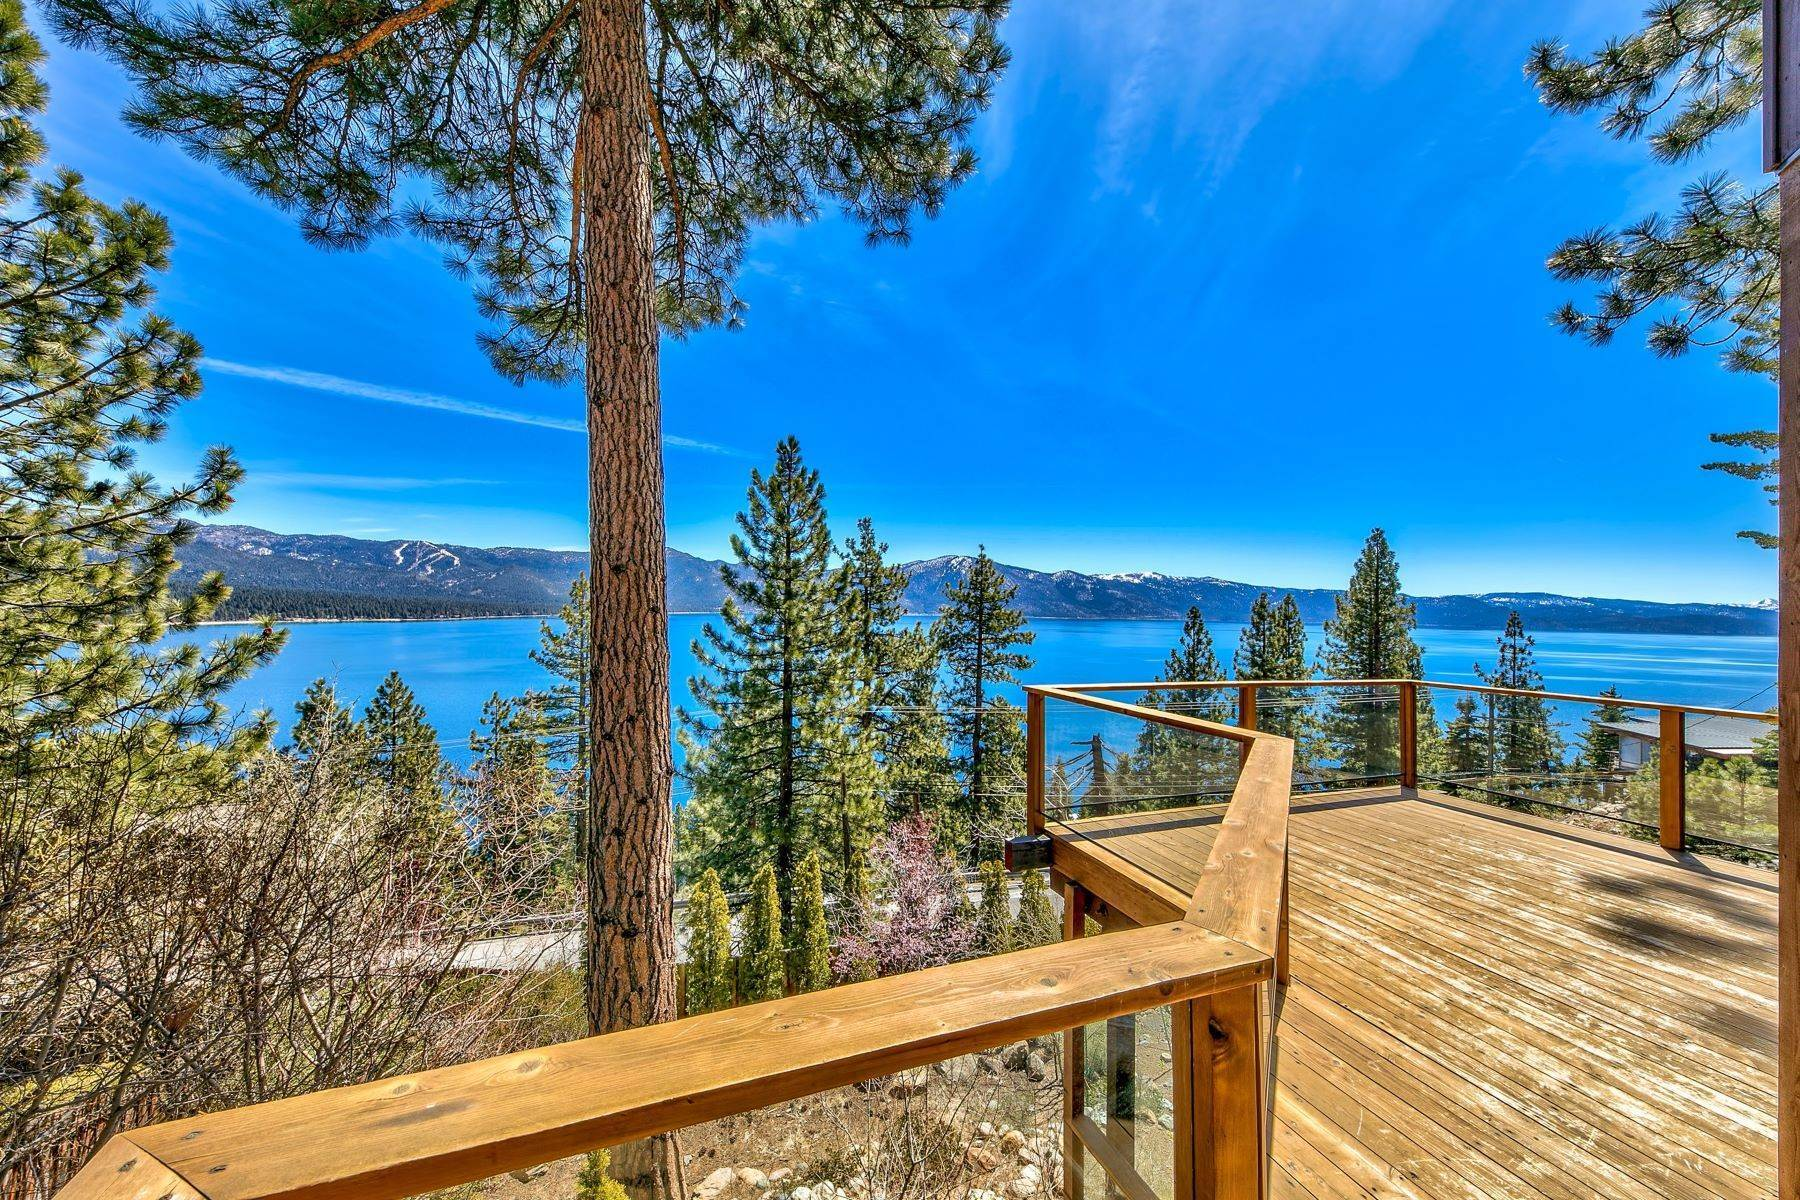 Property for Active at Crystal Bay Cabin & Panoramic Views 370 Wassou Rd Crystal Bay, Nevada 89402 United States